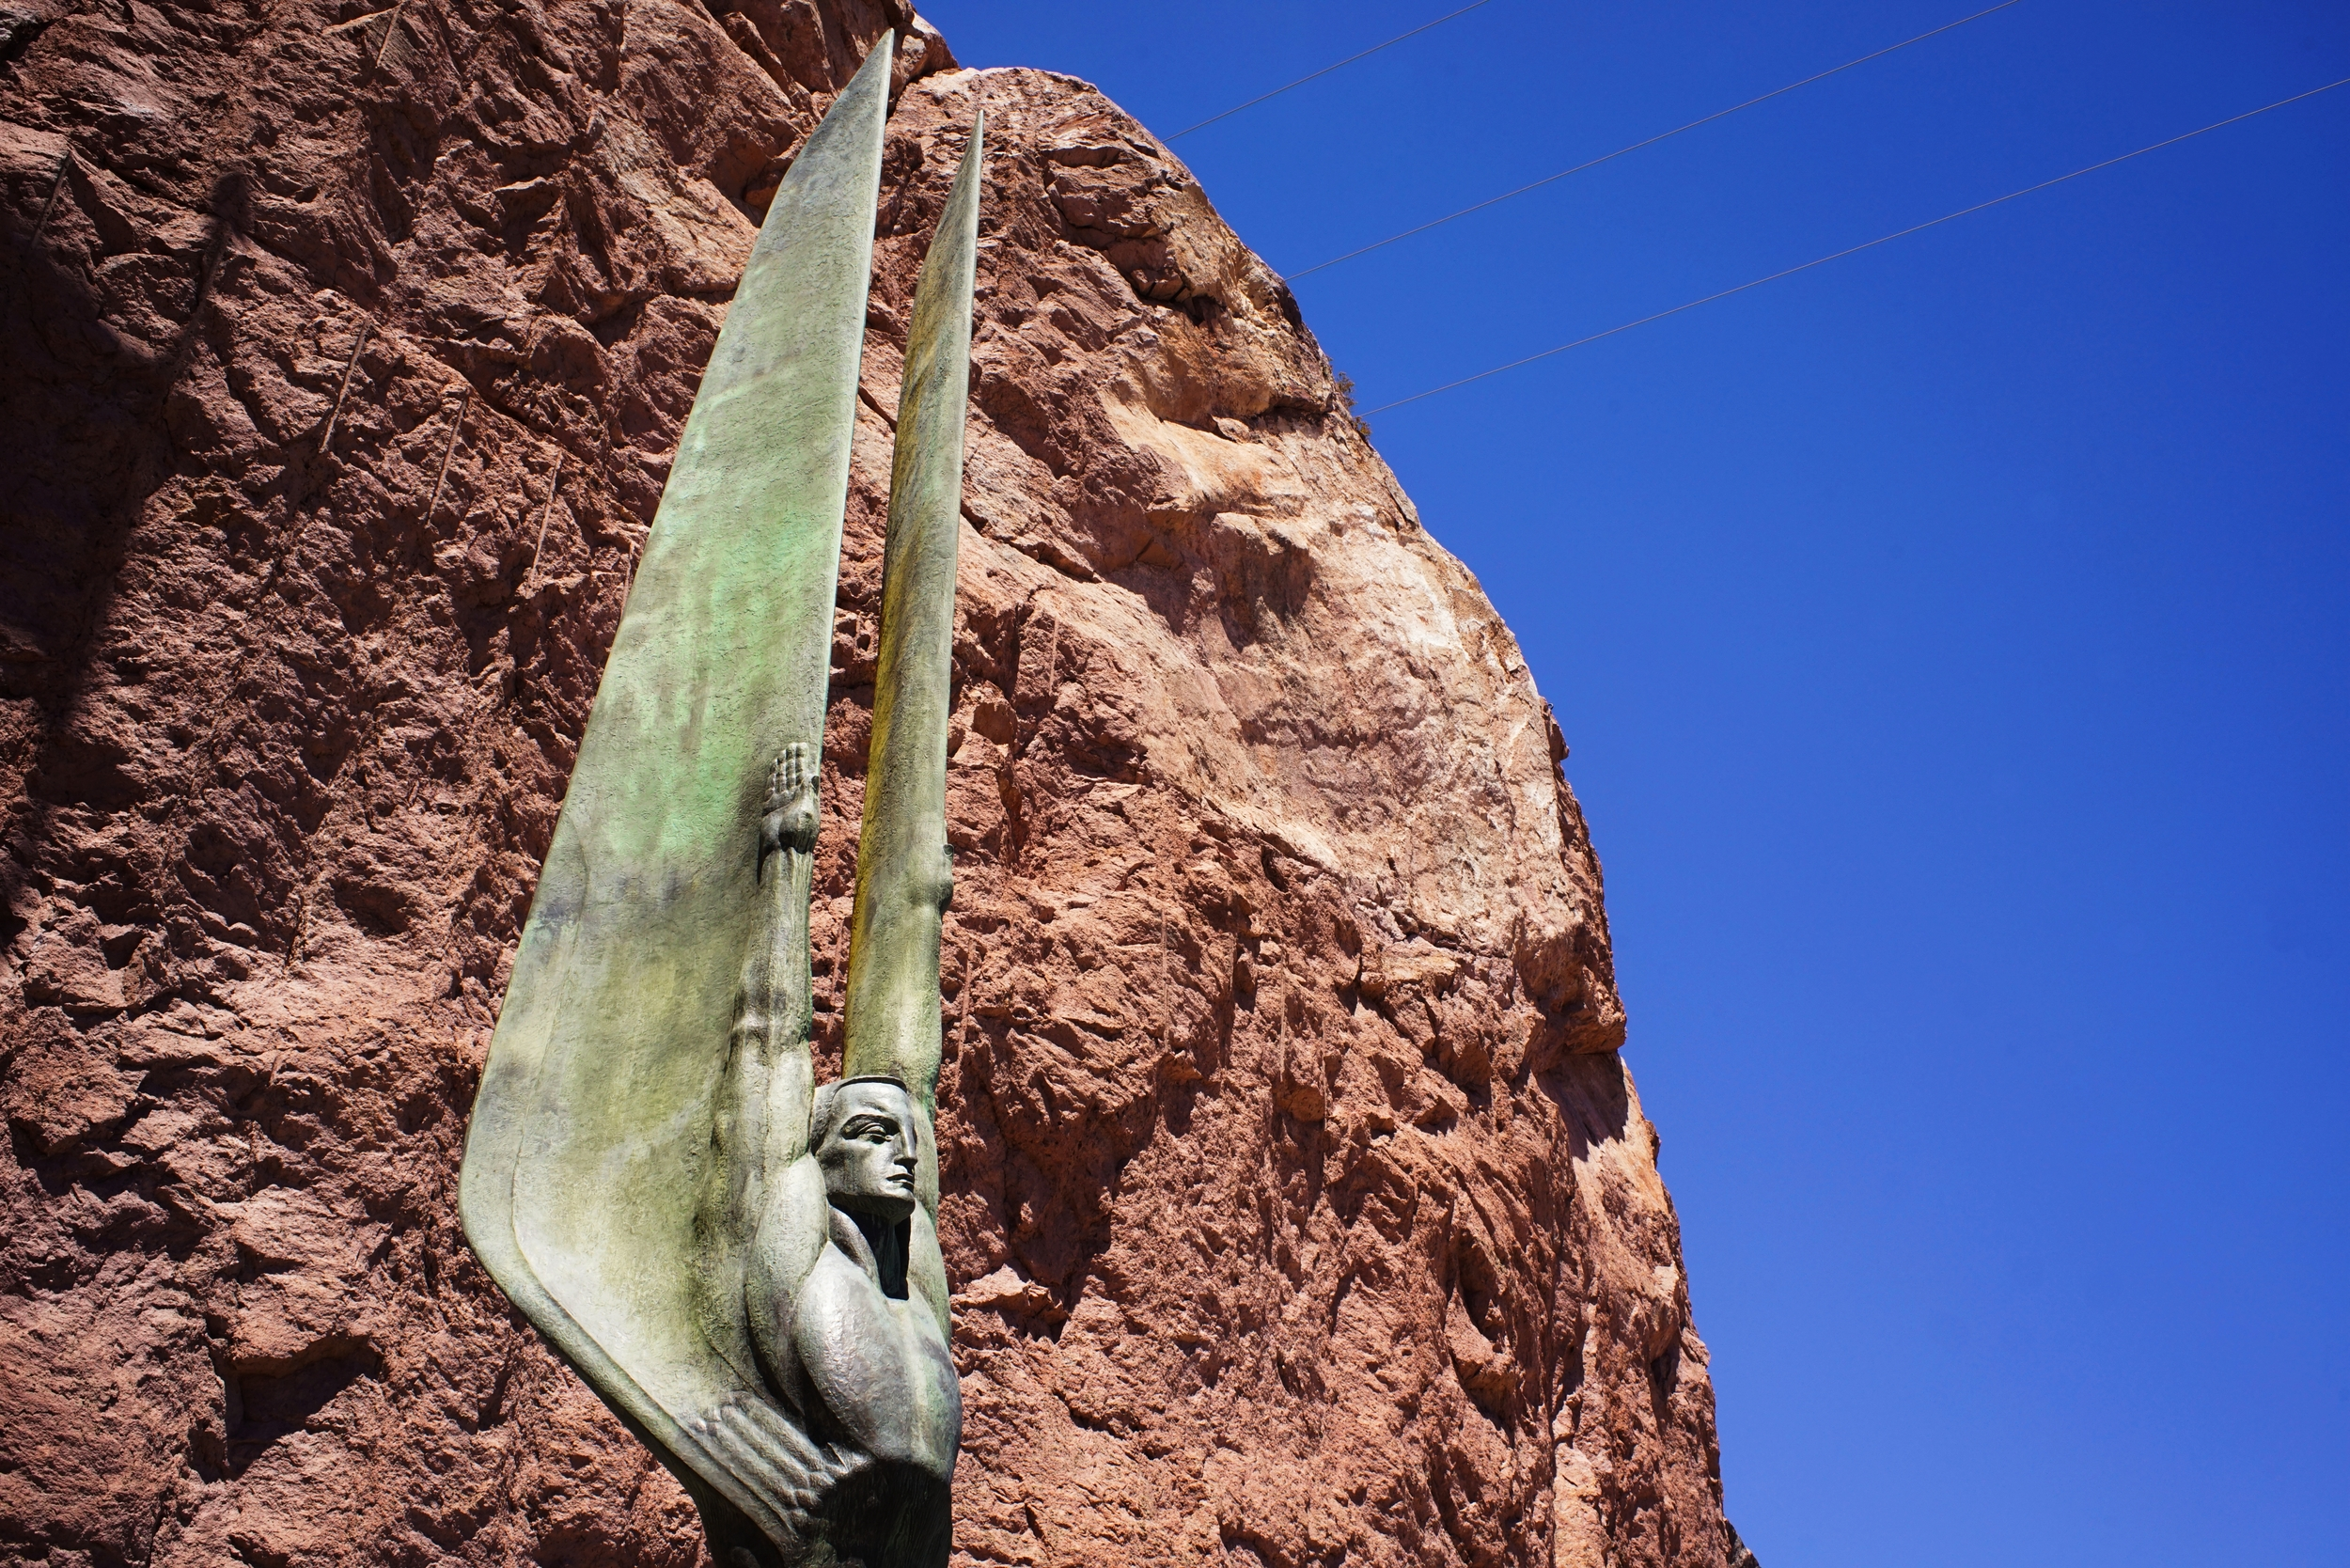 A side view of one of the two  Winged Angels of the Republic  standing tall next to the canyon walls.  Photo: Trey Takahashi